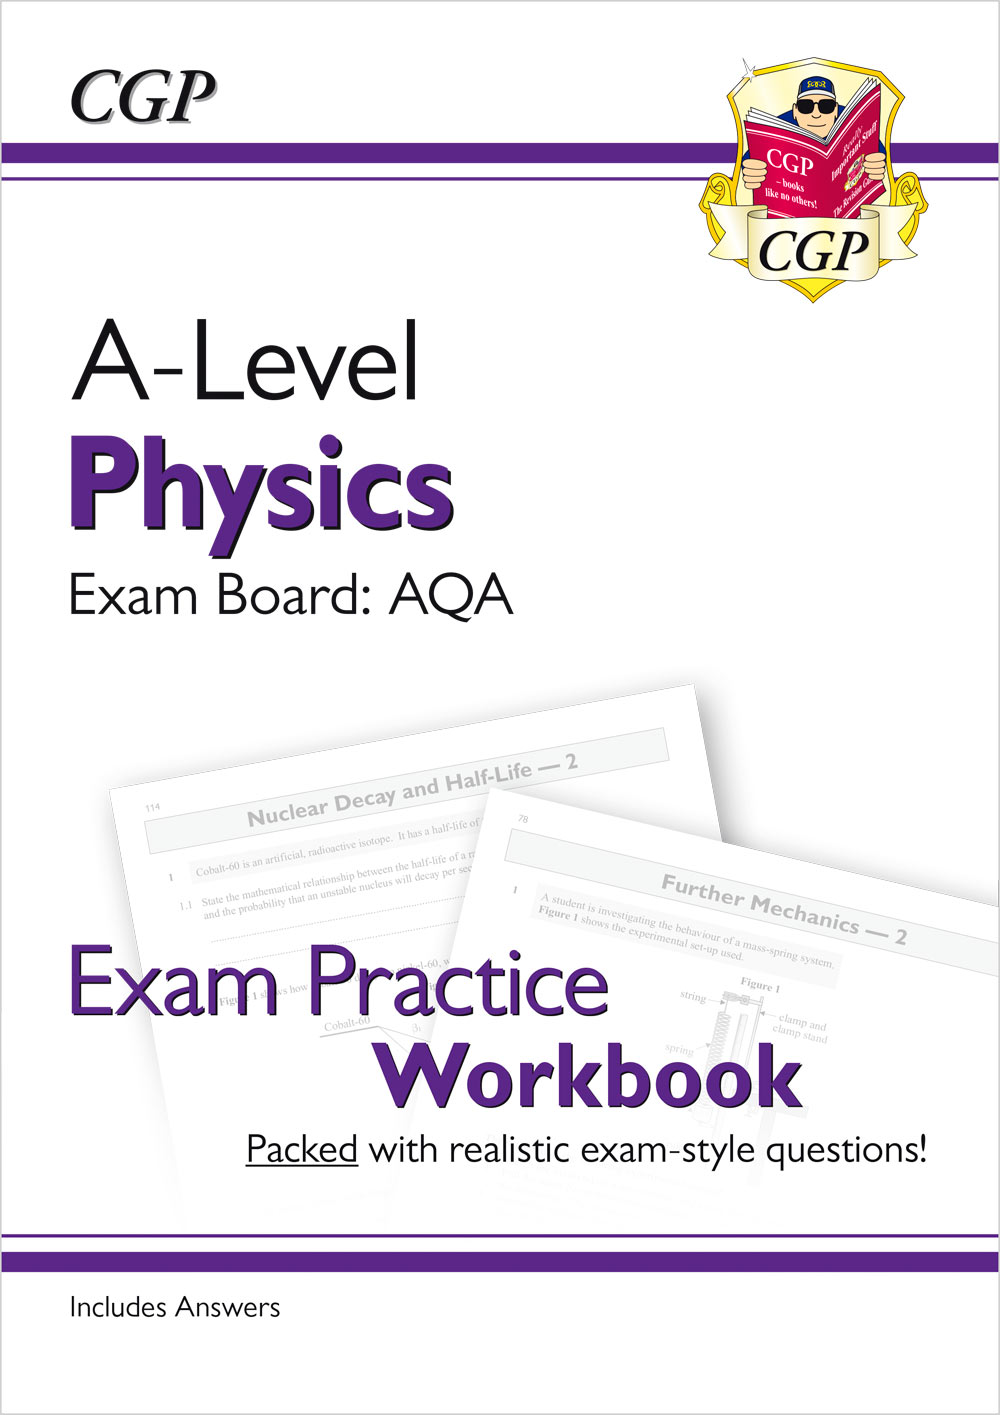 PAQ71 - New A-Level Physics for 2018: AQA Year 1 & 2 Exam Practice Workbook - includes Answers